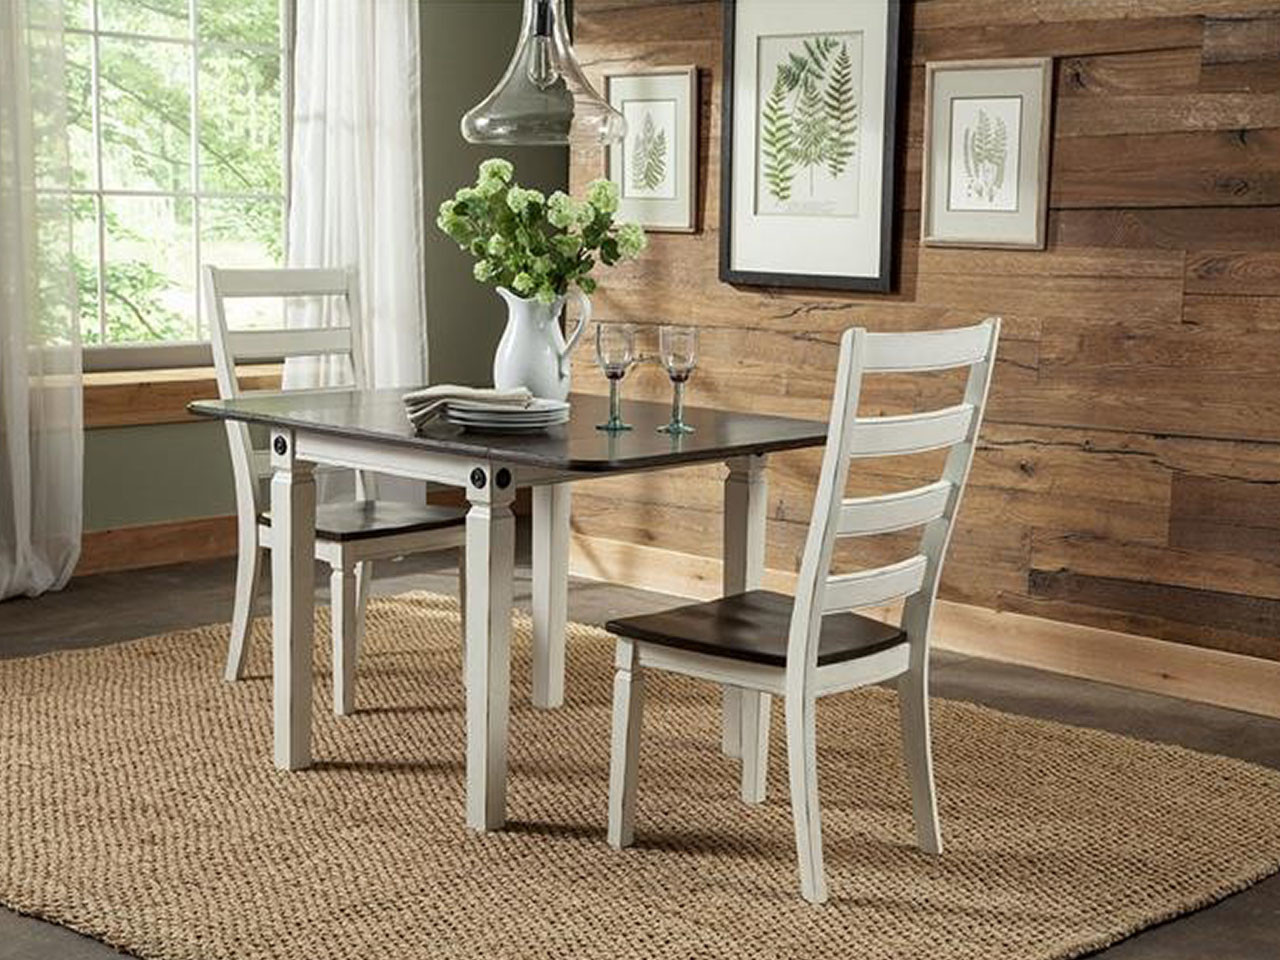 Attirant Glenwood Dining Table And 4 Chairs $499